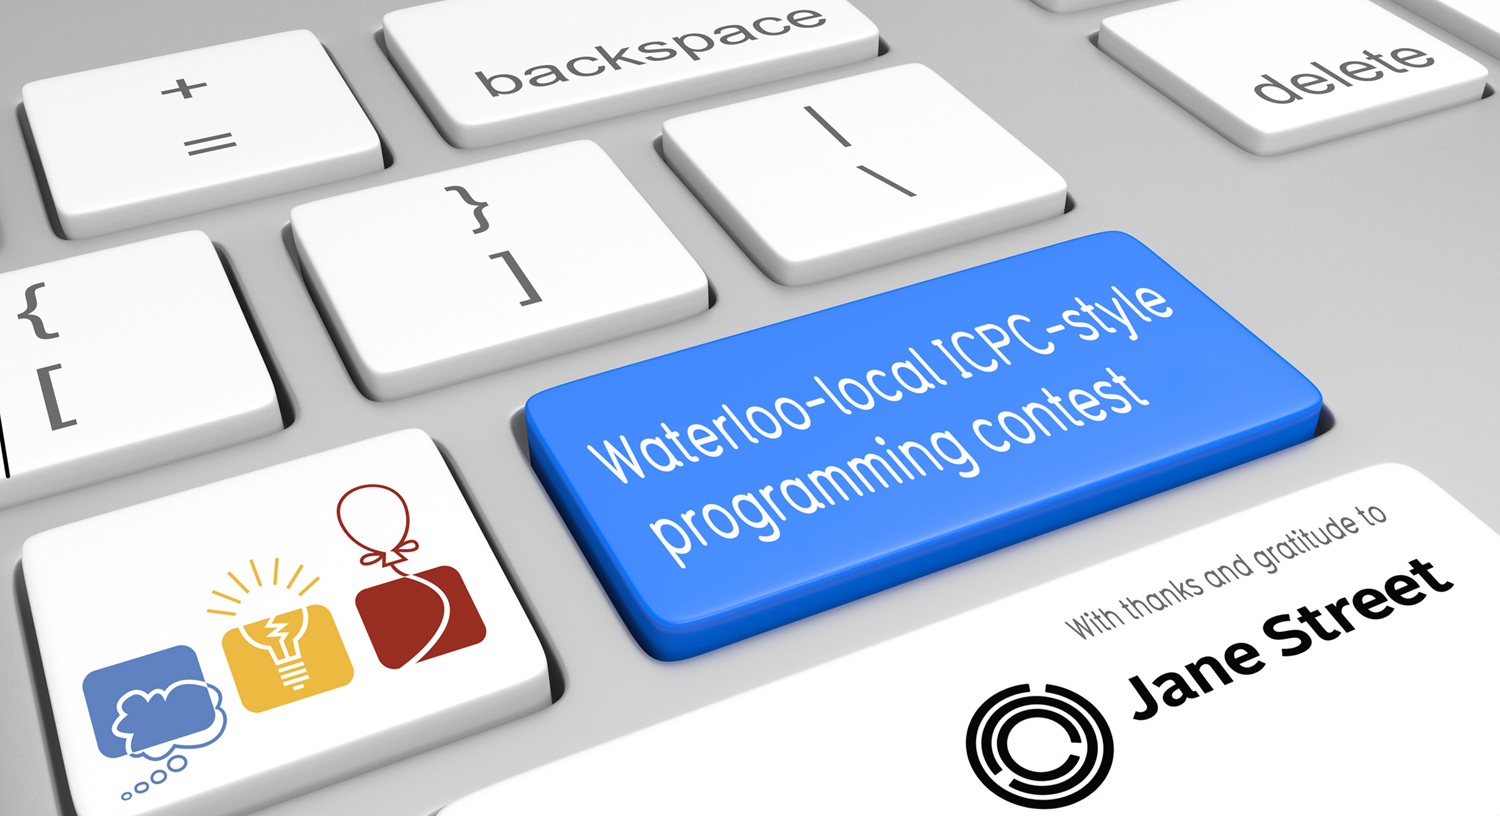 image depicting Waterloo-local ICPC-style programming contest